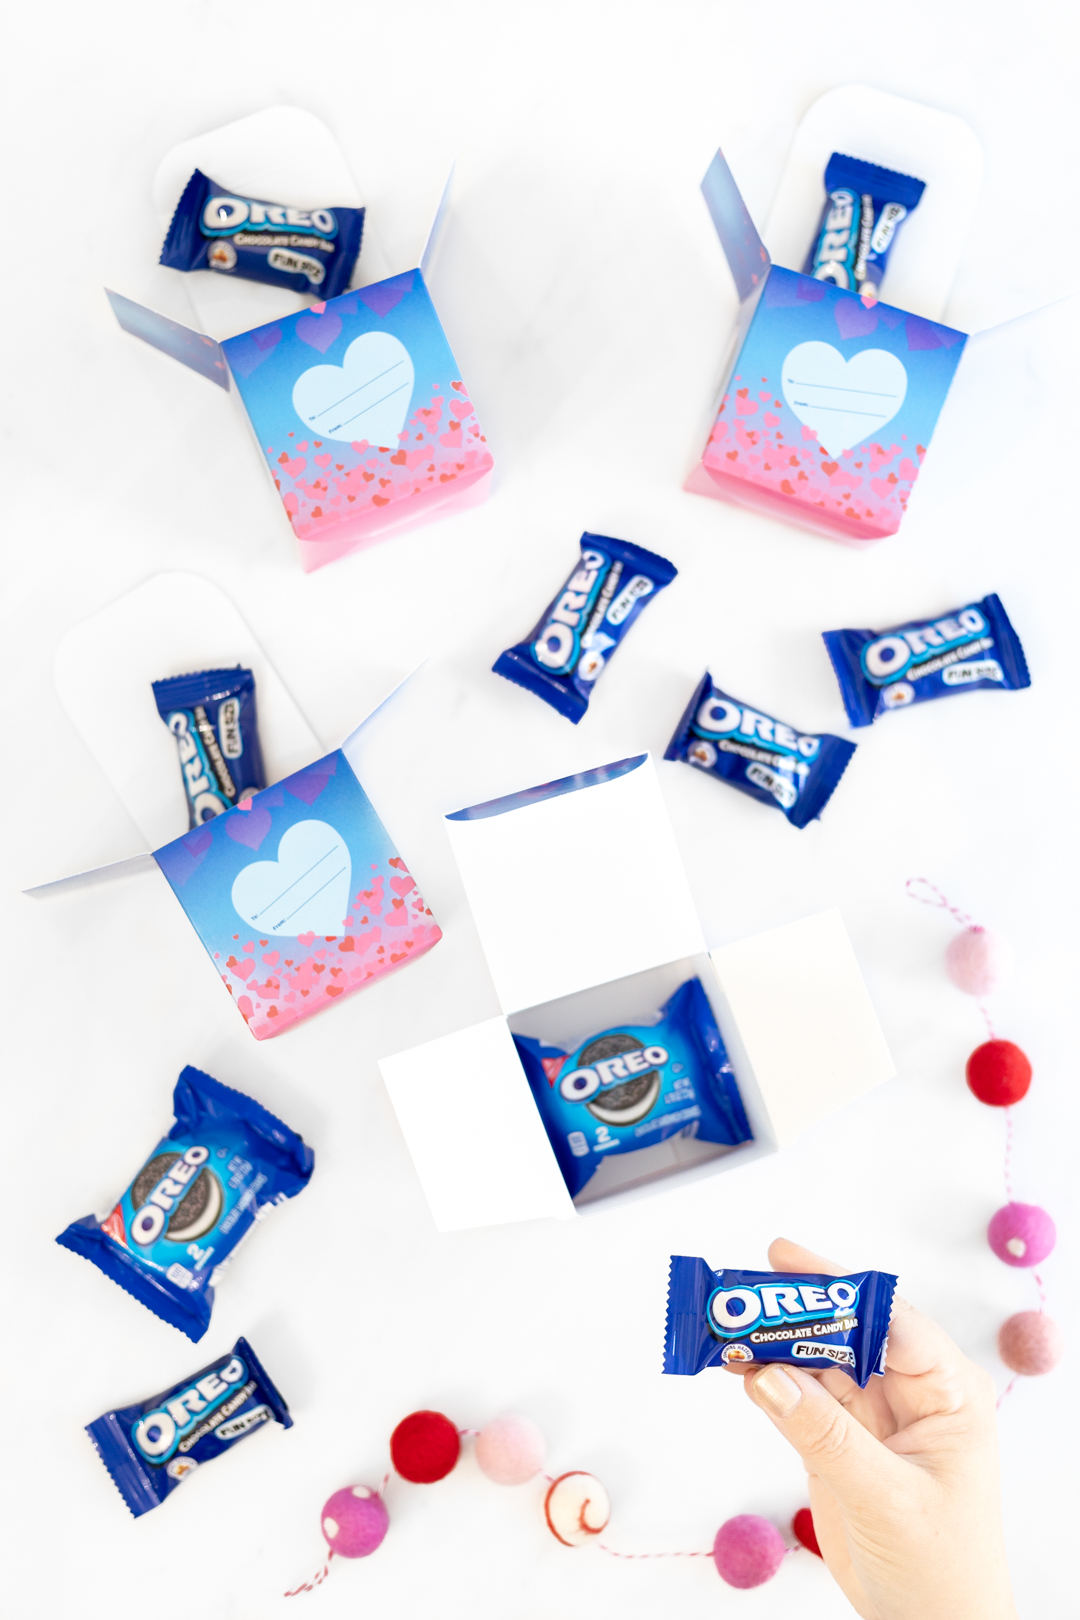 OREO Valentine's Day Gift Exchange